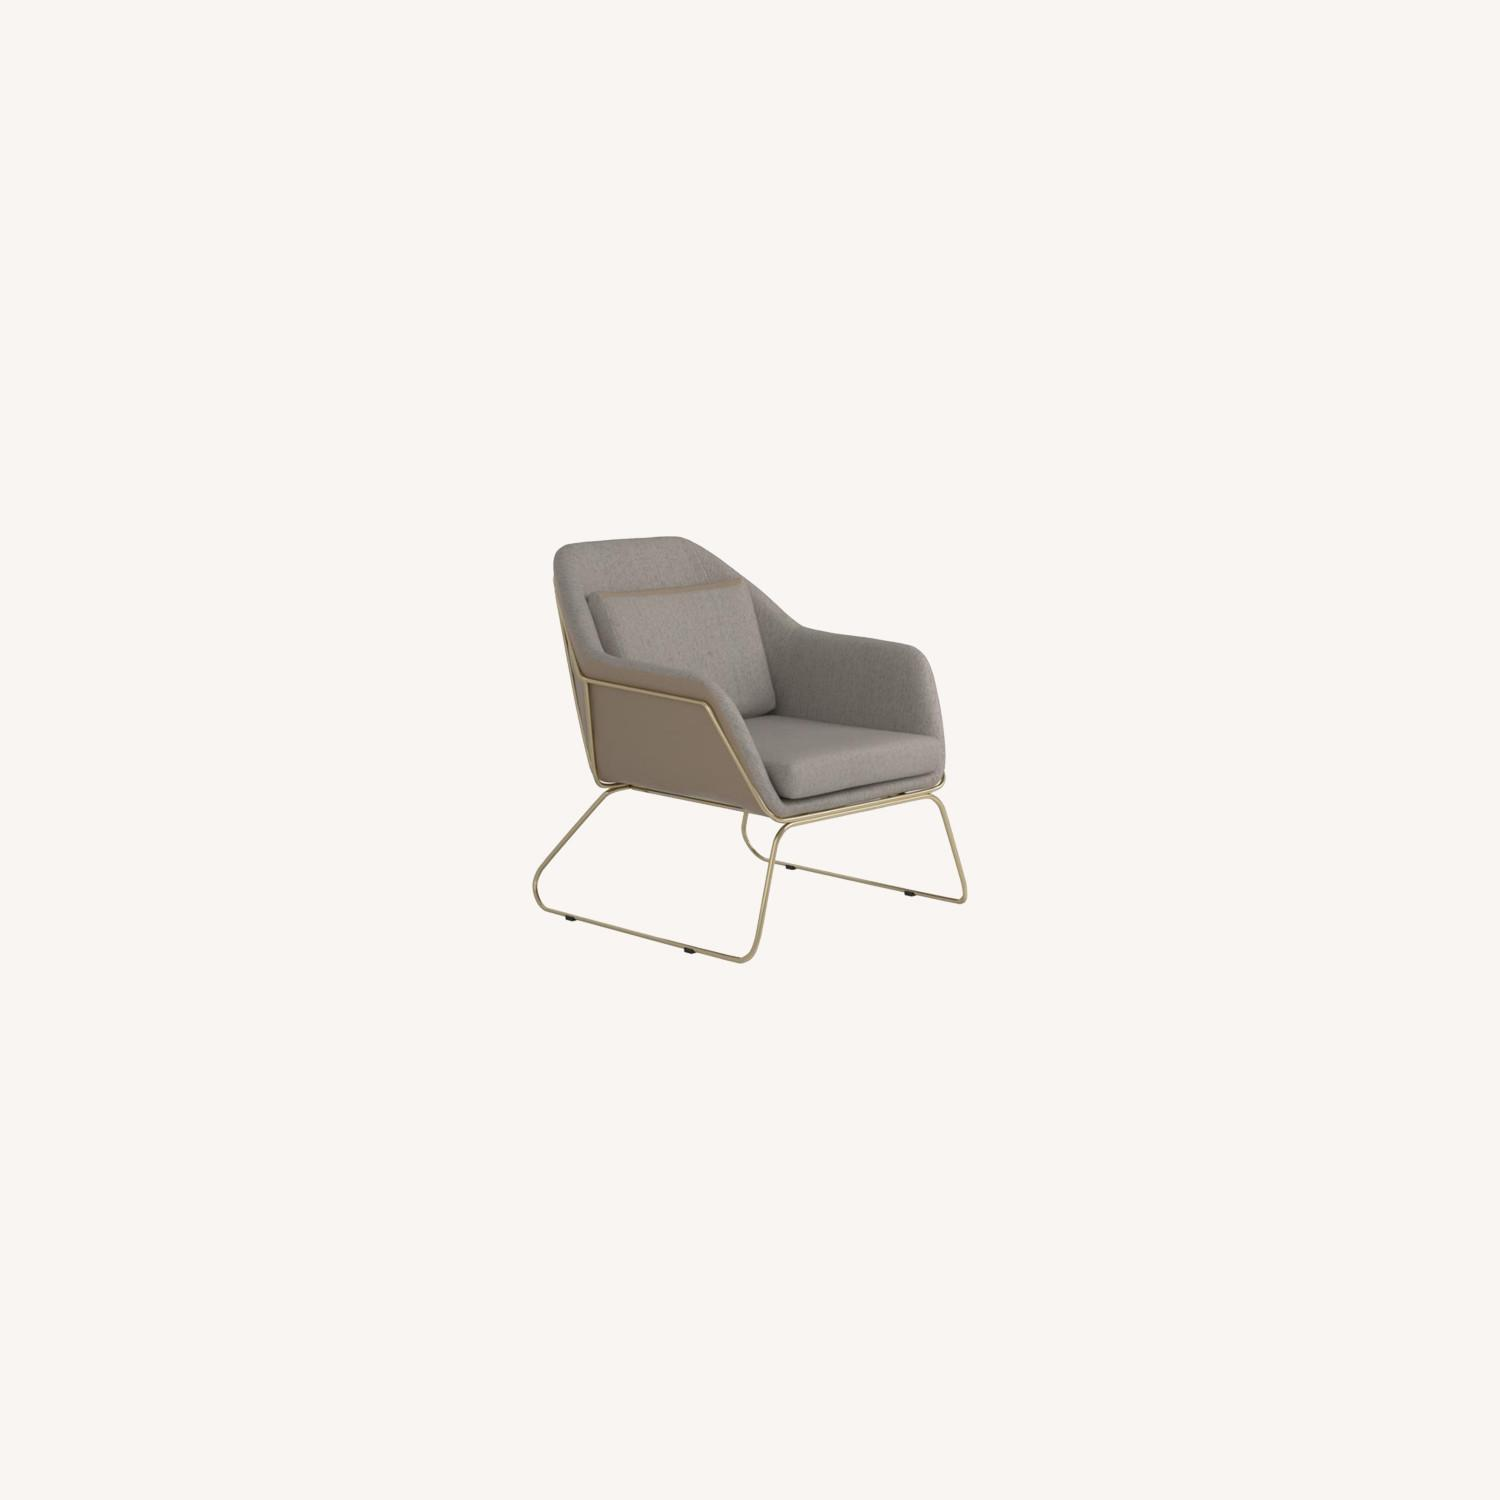 Accent Chair In Linen-Like Beige Fabric - image-3